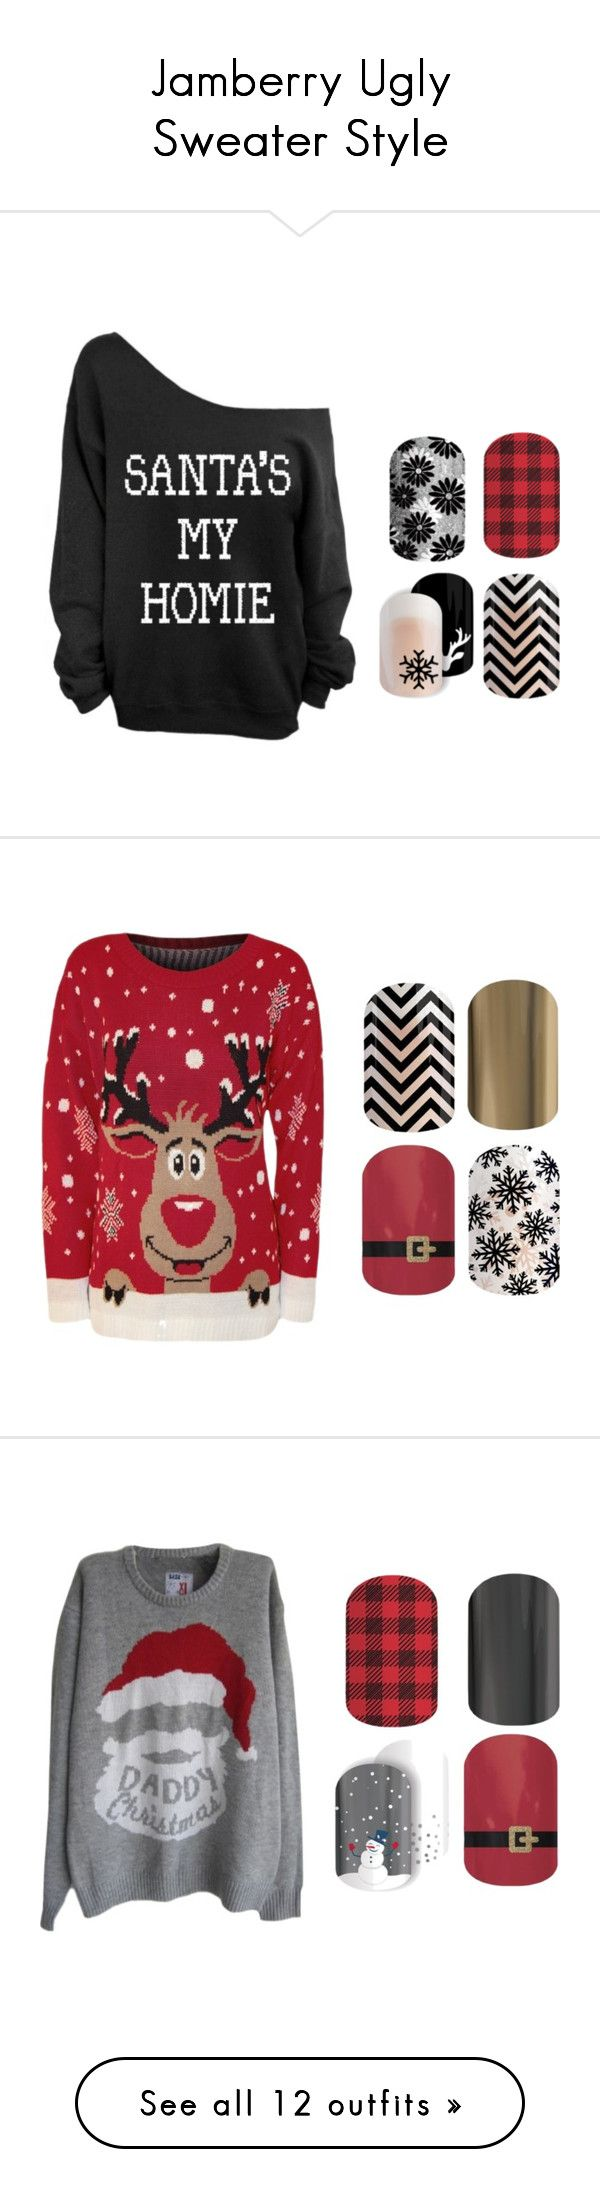 """Jamberry Ugly Sweater Style"" by kellie-guravich-medivitz on Polyvore"